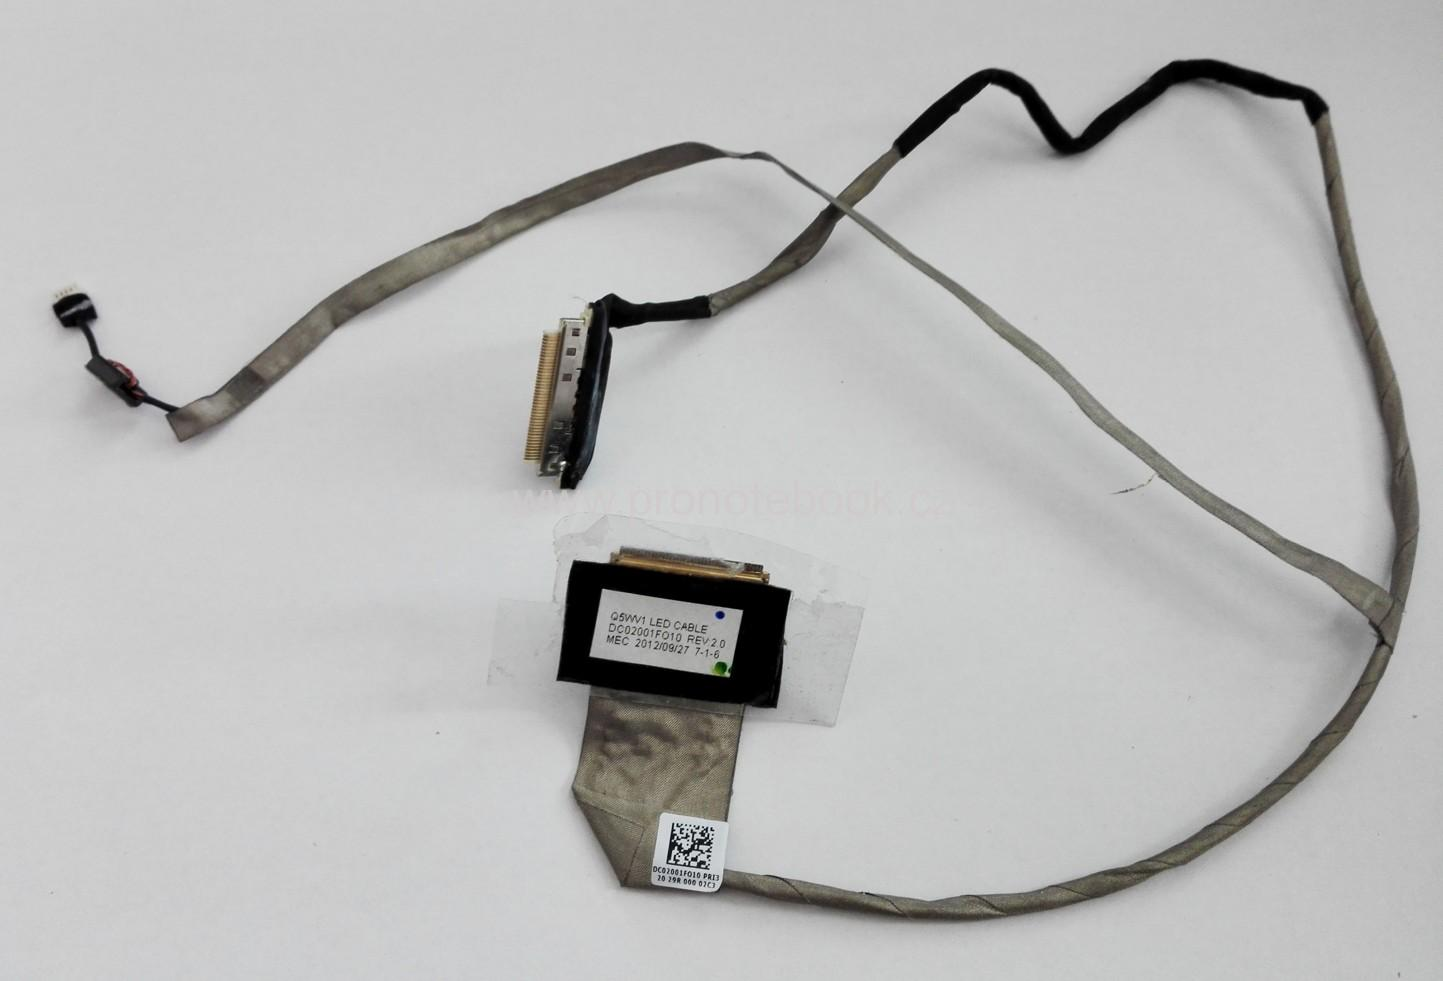 Acer E1-571G Q5WV1 LED CABLE DC02001F010 rev.:2.0 DC02001FO10